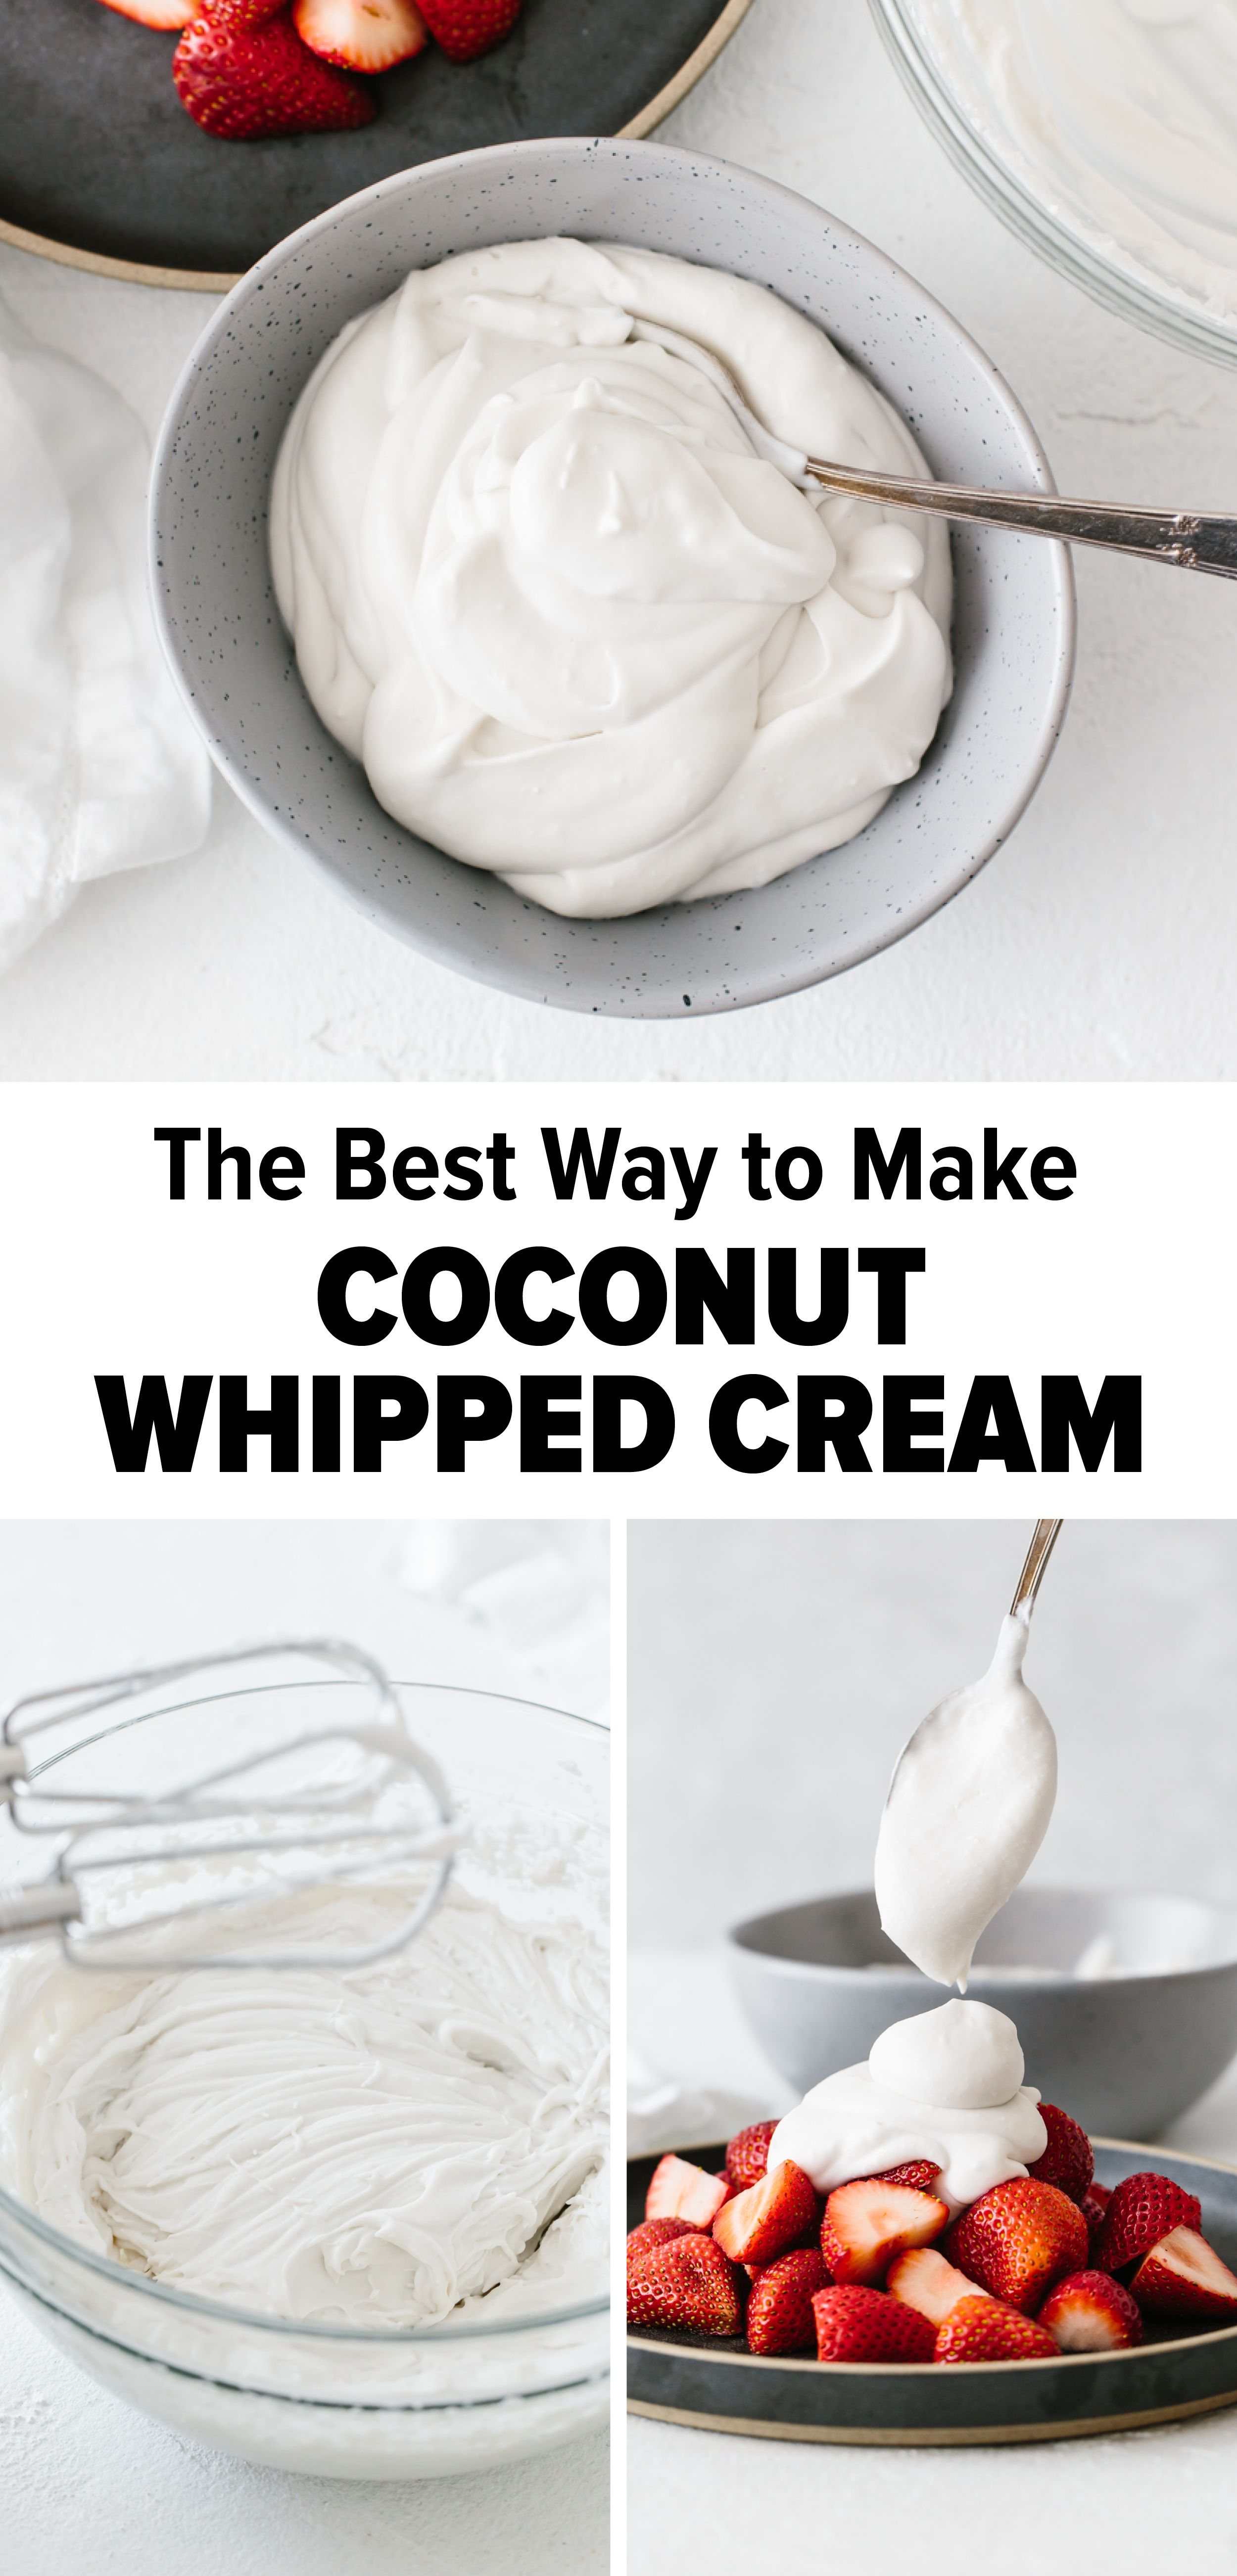 How To Make Coconut Whipped Cream Coconut Milk Recipes Coconut Recipes Recipes With Whipping Cream